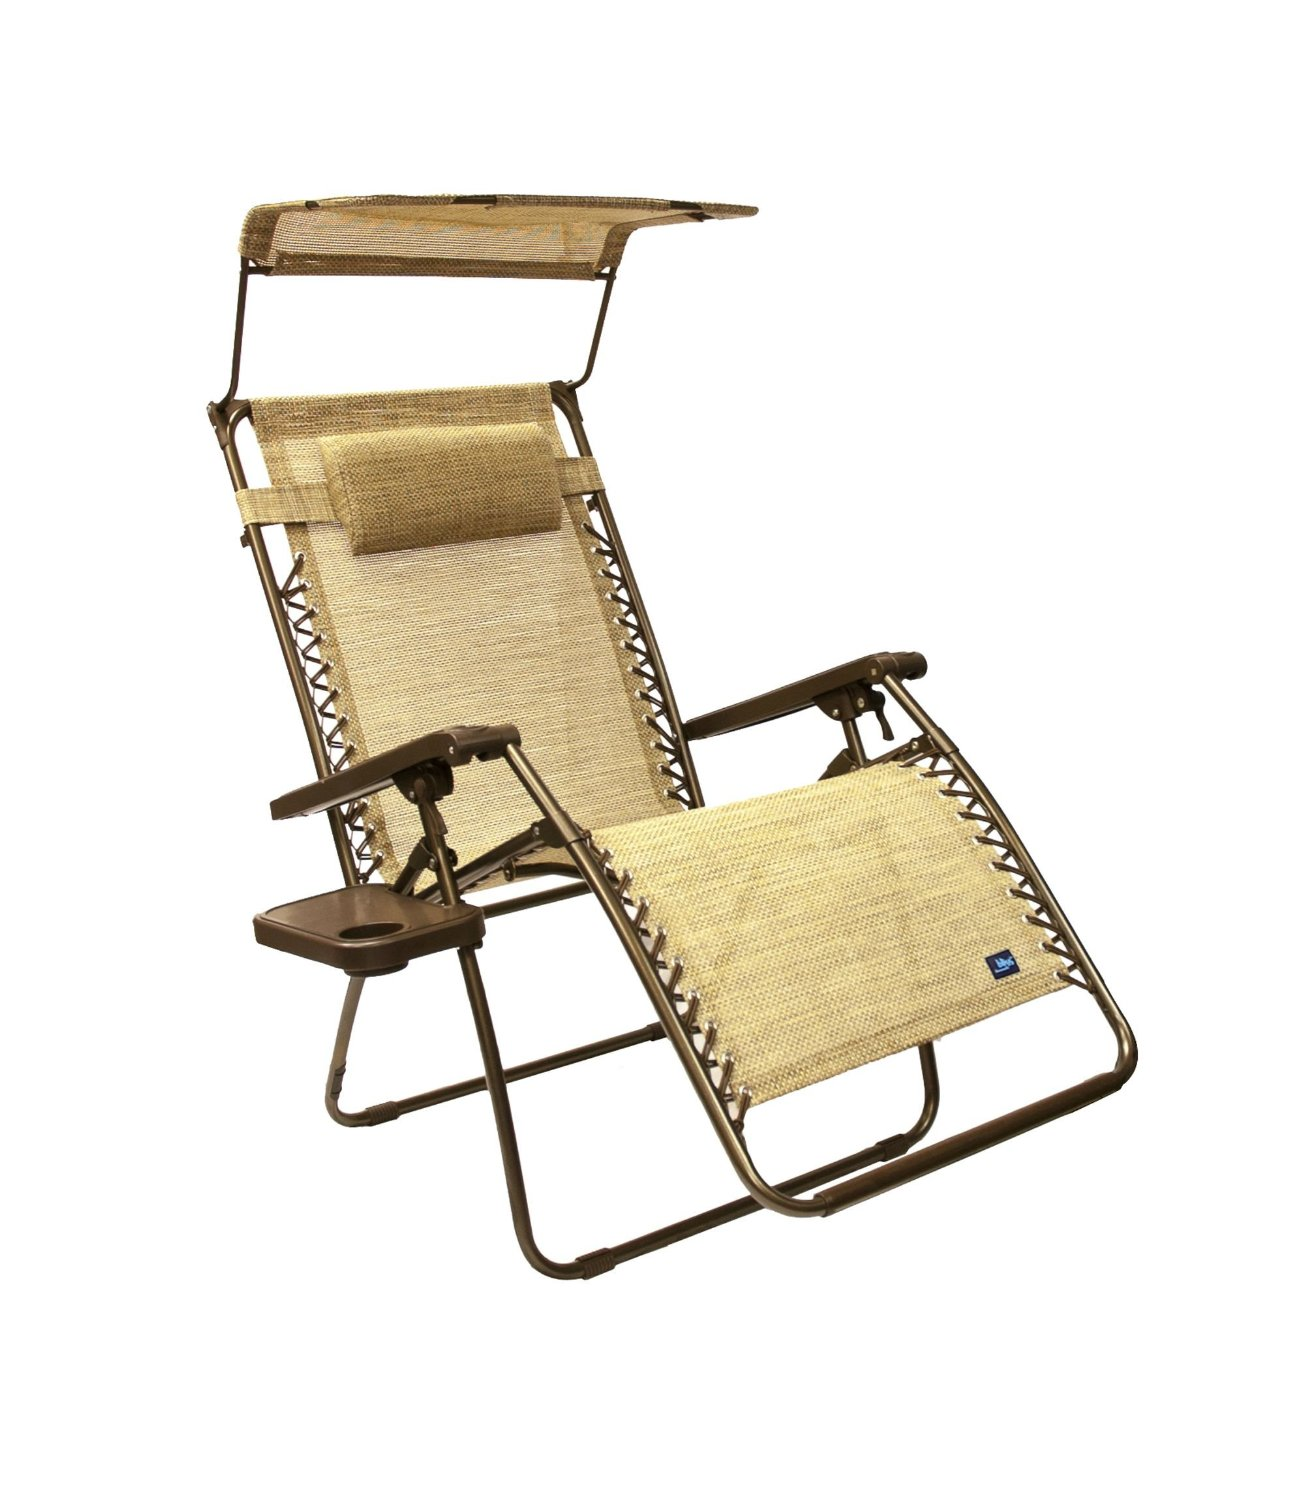 Get Quotations · Bliss Hammocks Wide Gravity Free Lounger Chair With Pillow And  Canopy And Side Tray, Sand